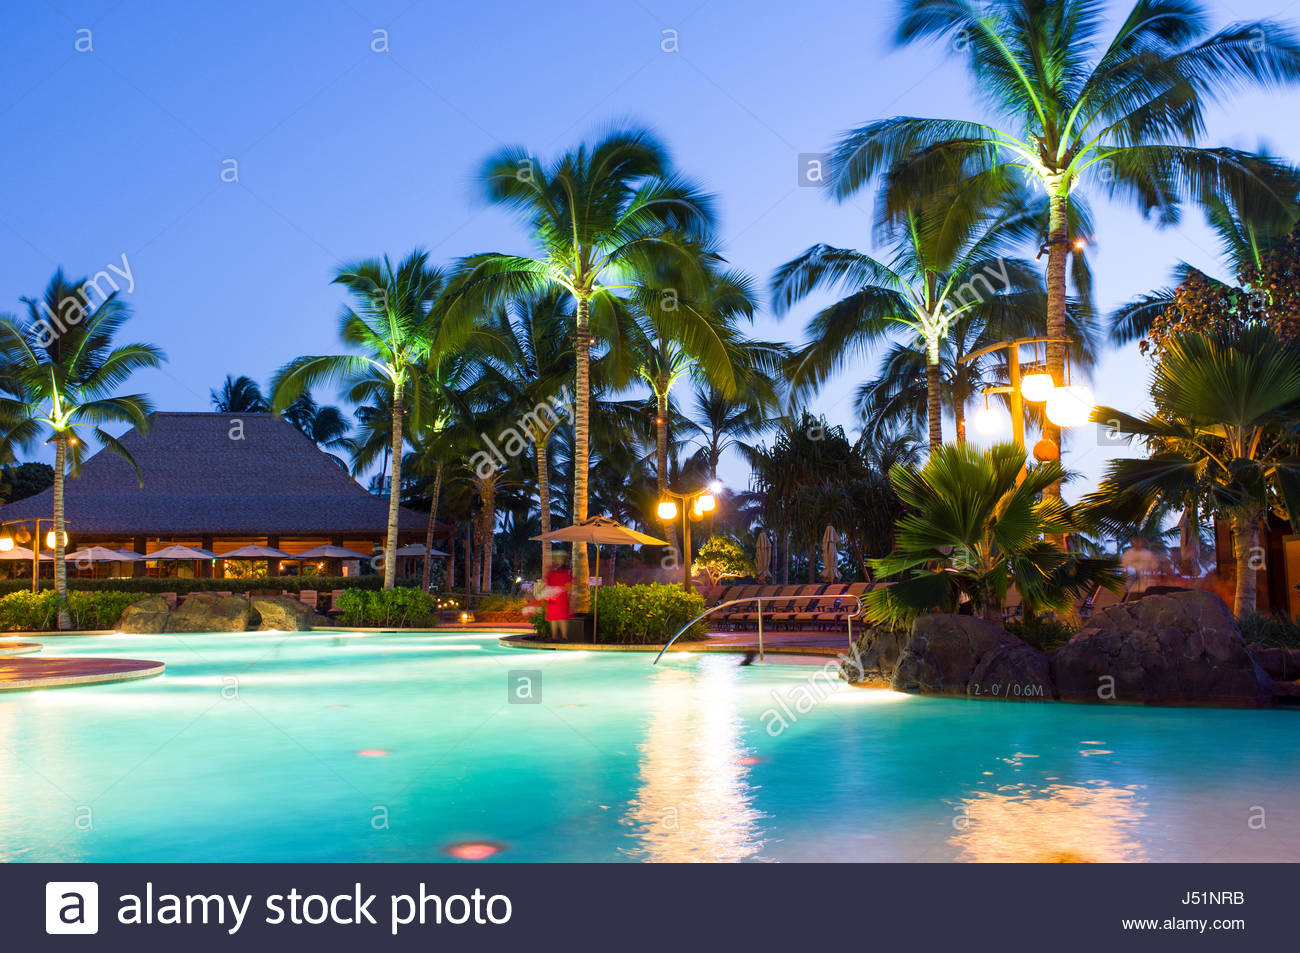 Swimming Pool At Dusk Aulani A Disney Resort Spa 92 1185 Stock Photo 140795295 Alamy